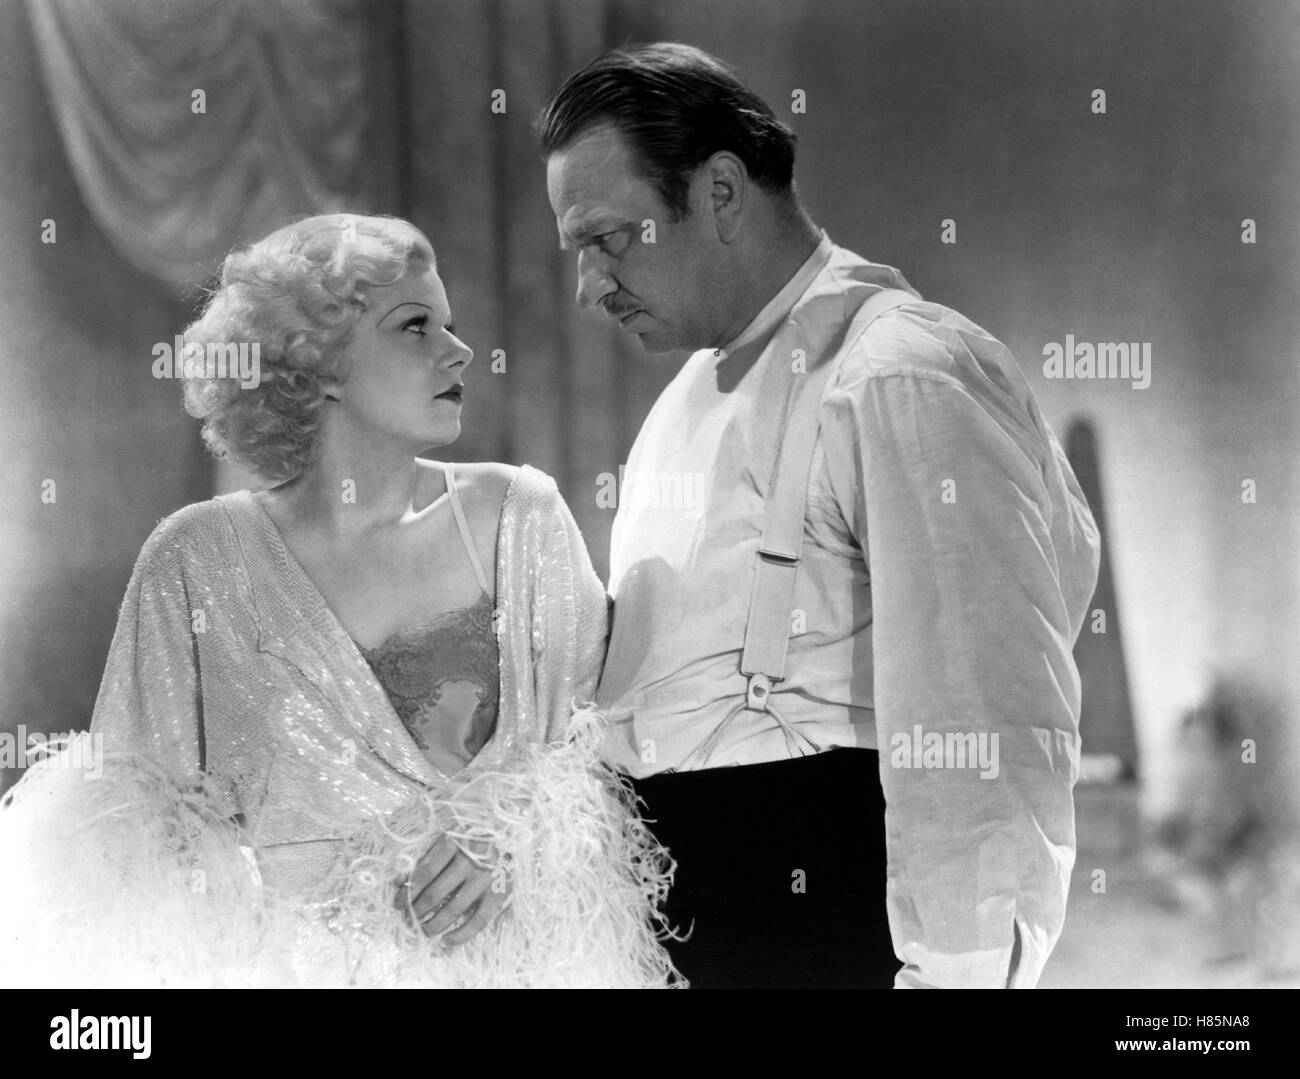 Dinner um Acht, (DINNER AT EIGHT) USA 1933 s/w, Regie: George Cukor, JEAN HARLOW, WALLACE BEERY - Stock Image